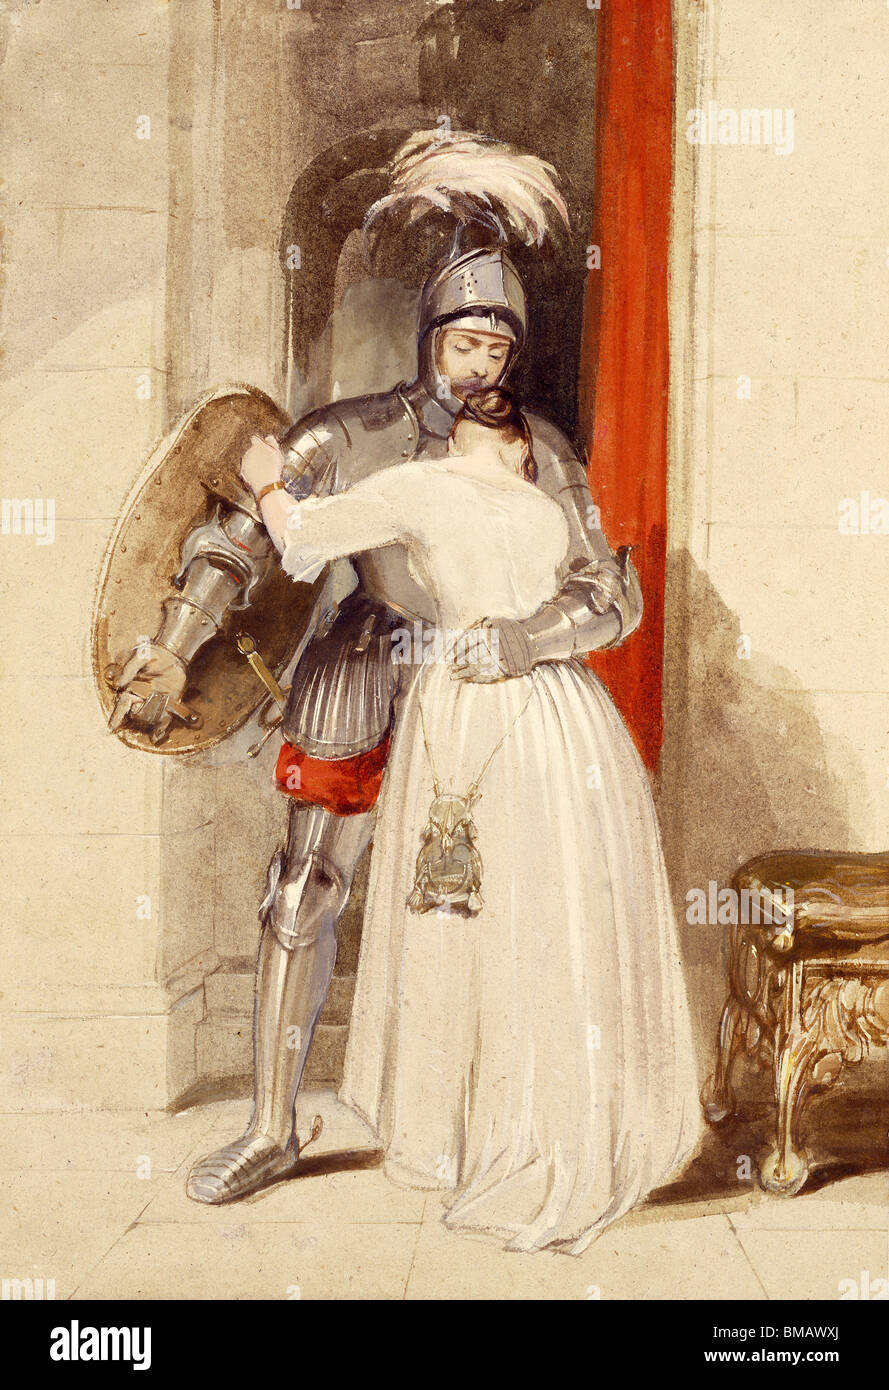 Lady Knight, by George Cattermole. England, 19th century - Stock Image